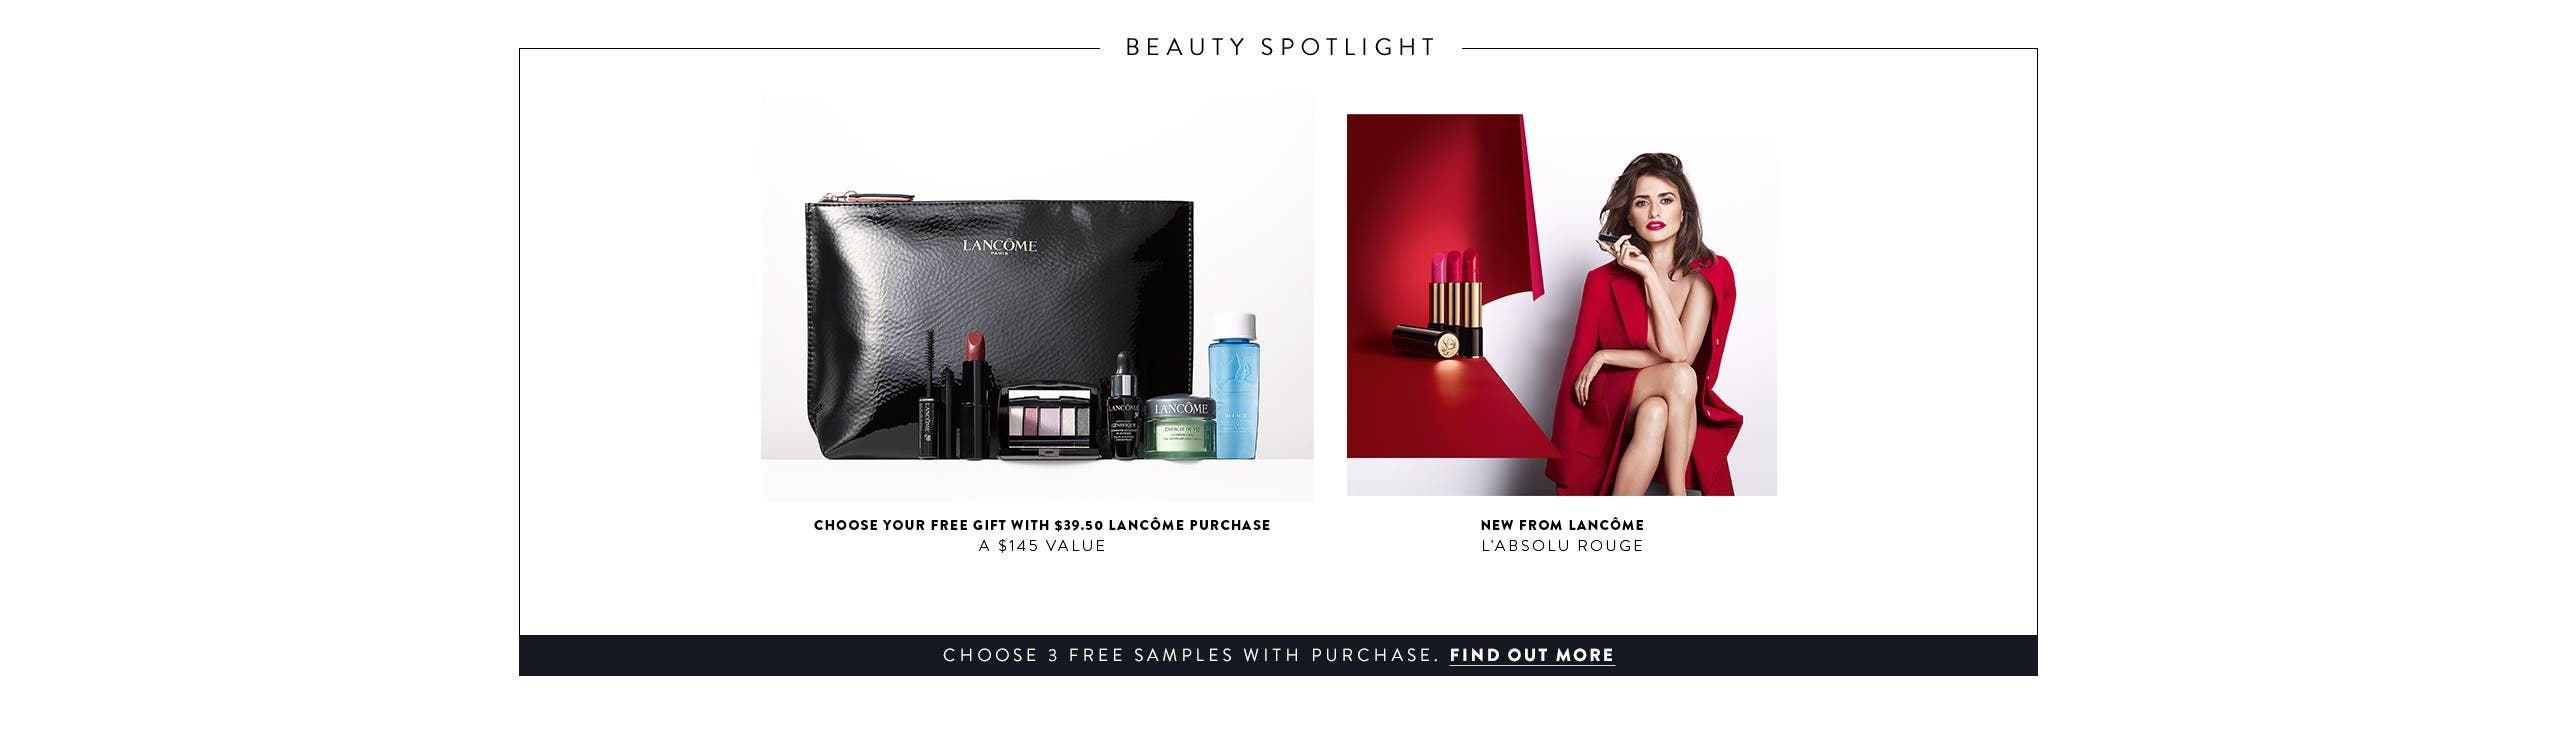 Choose your free gift with $39.50 Lancôme purchase. A $145 Value. New from Lancôme: L'Absolu Rouge. Choose 3 free samples with purchase. Find out more.